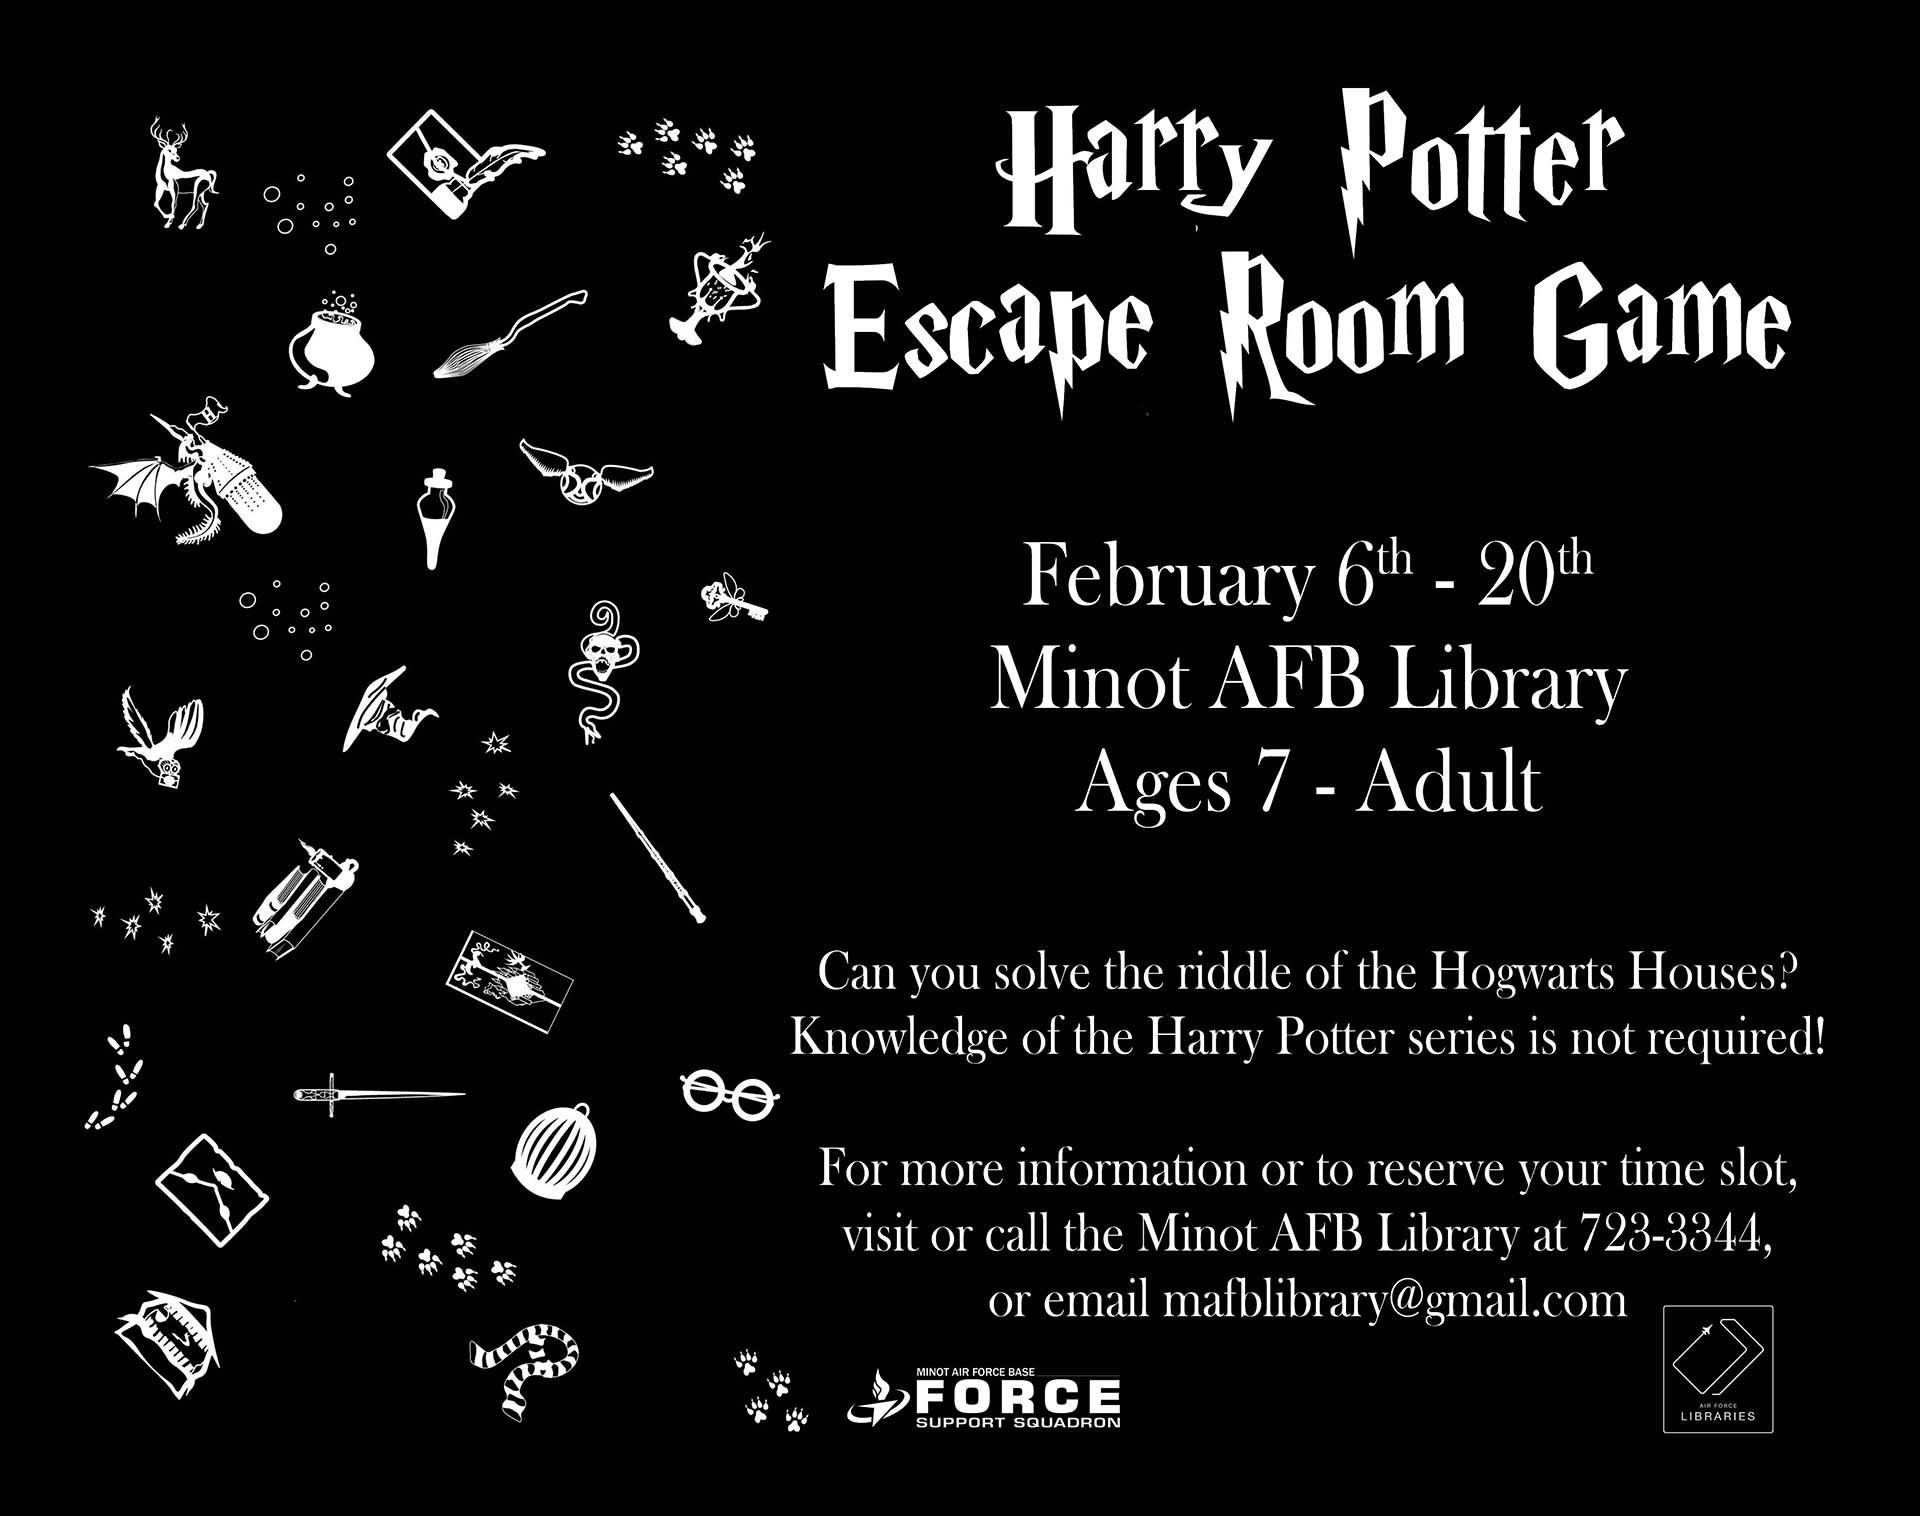 Harry Potter Escape Room Game